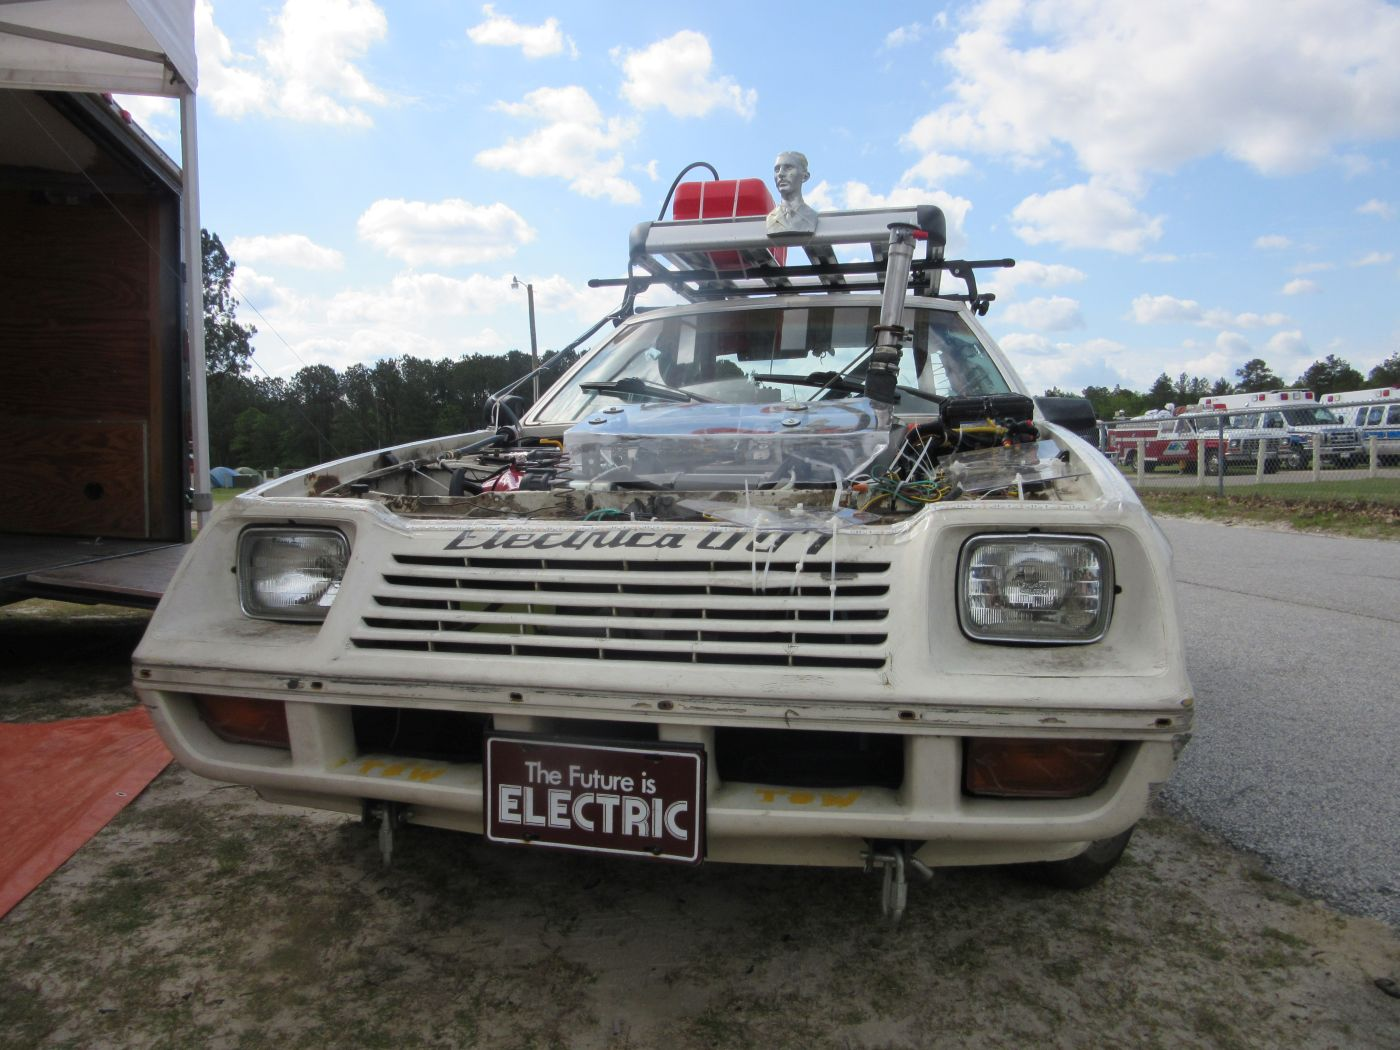 Electric Car, Lemons Rally